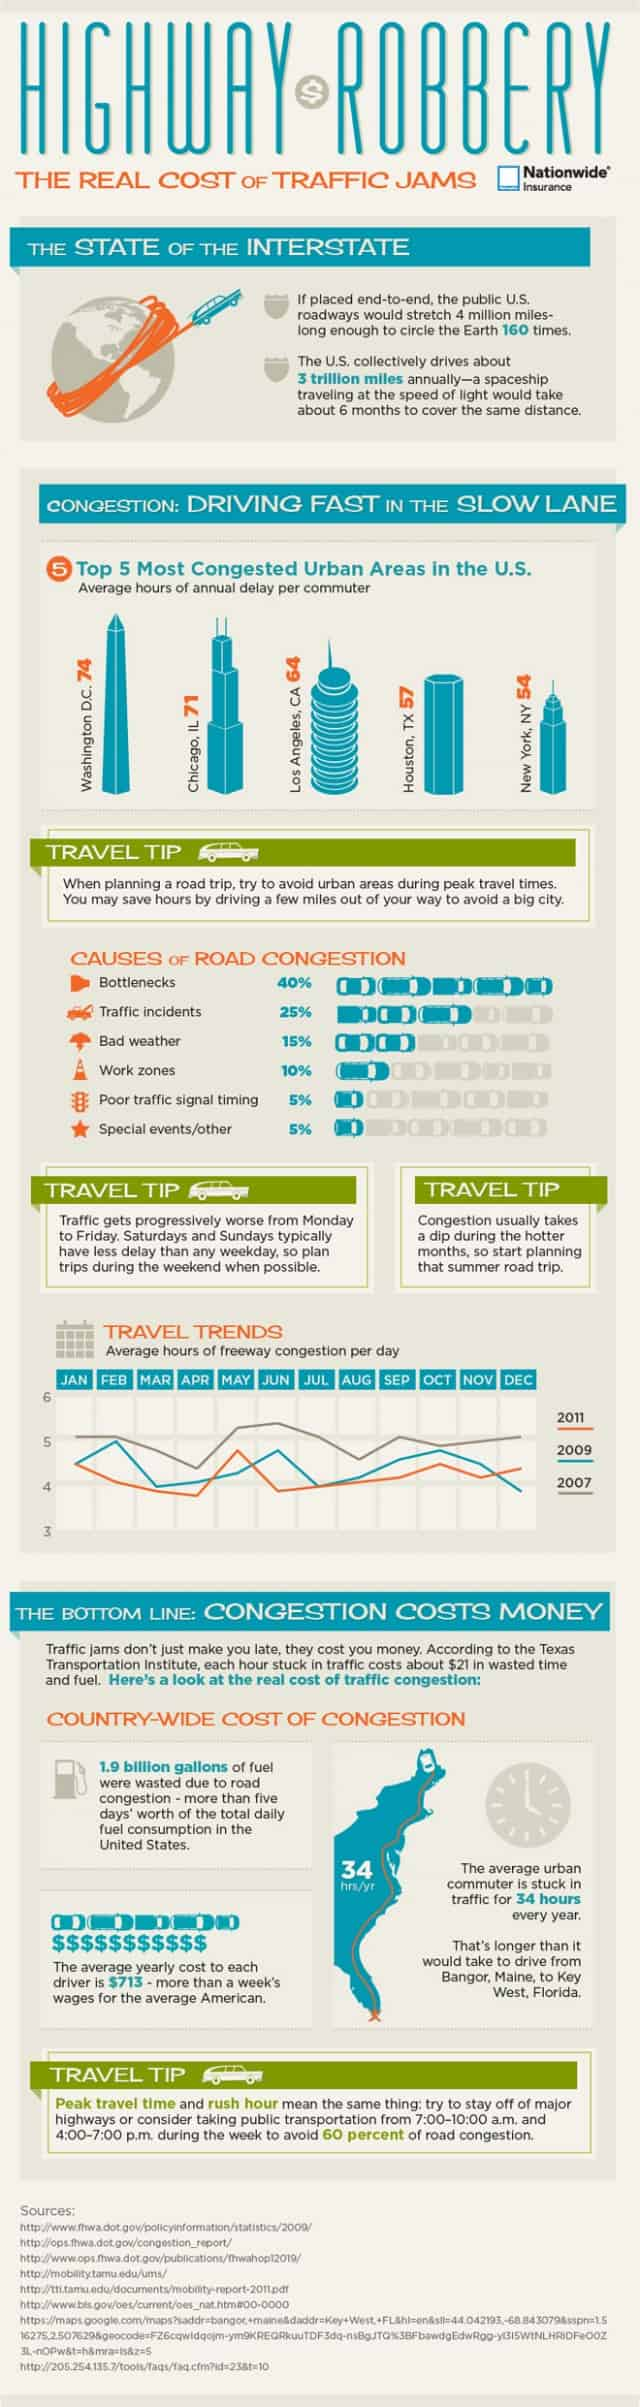 Real Cost of Traffic Jams